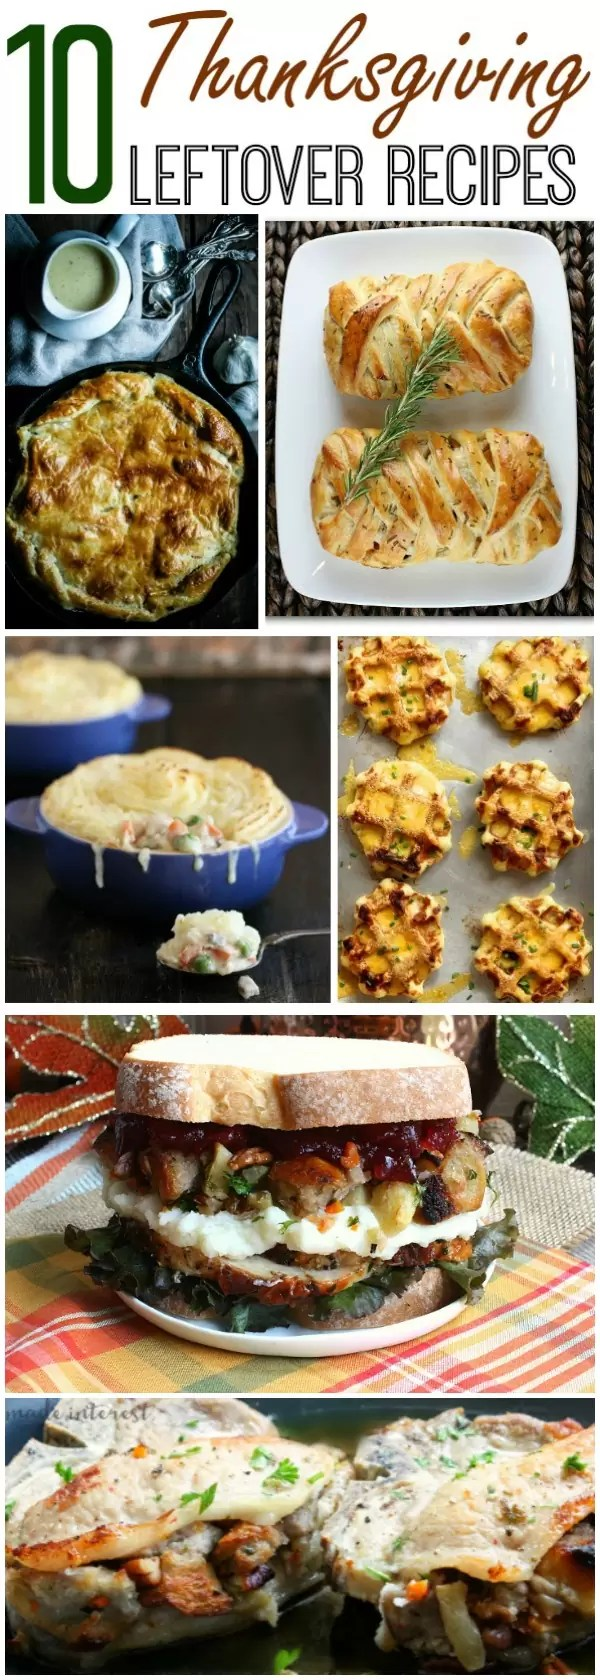 Thanksgiving recipes are amazing but what do you do with all of those leftovers? Take your Thanksgiving leftovers and turn them into an awesome meal. We've got some of the best recipes for using up those Thanksgiving leftovers!